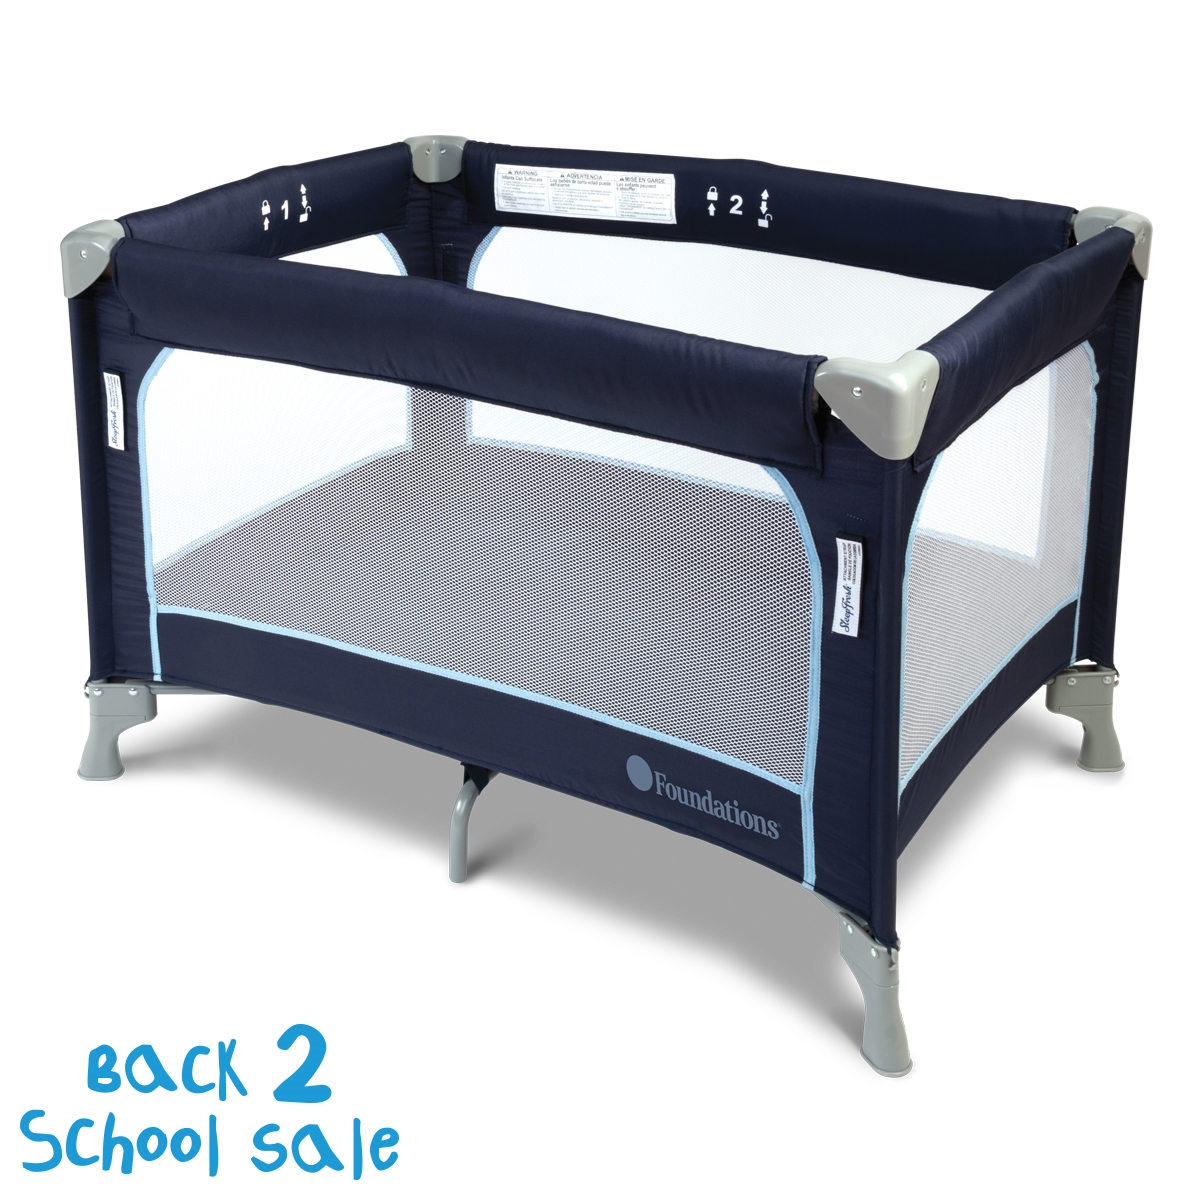 Celebrity Portable Crib - compatible with SleepFresh cover (sold separately) SleepFresh portable crib, pack and play, celebrity